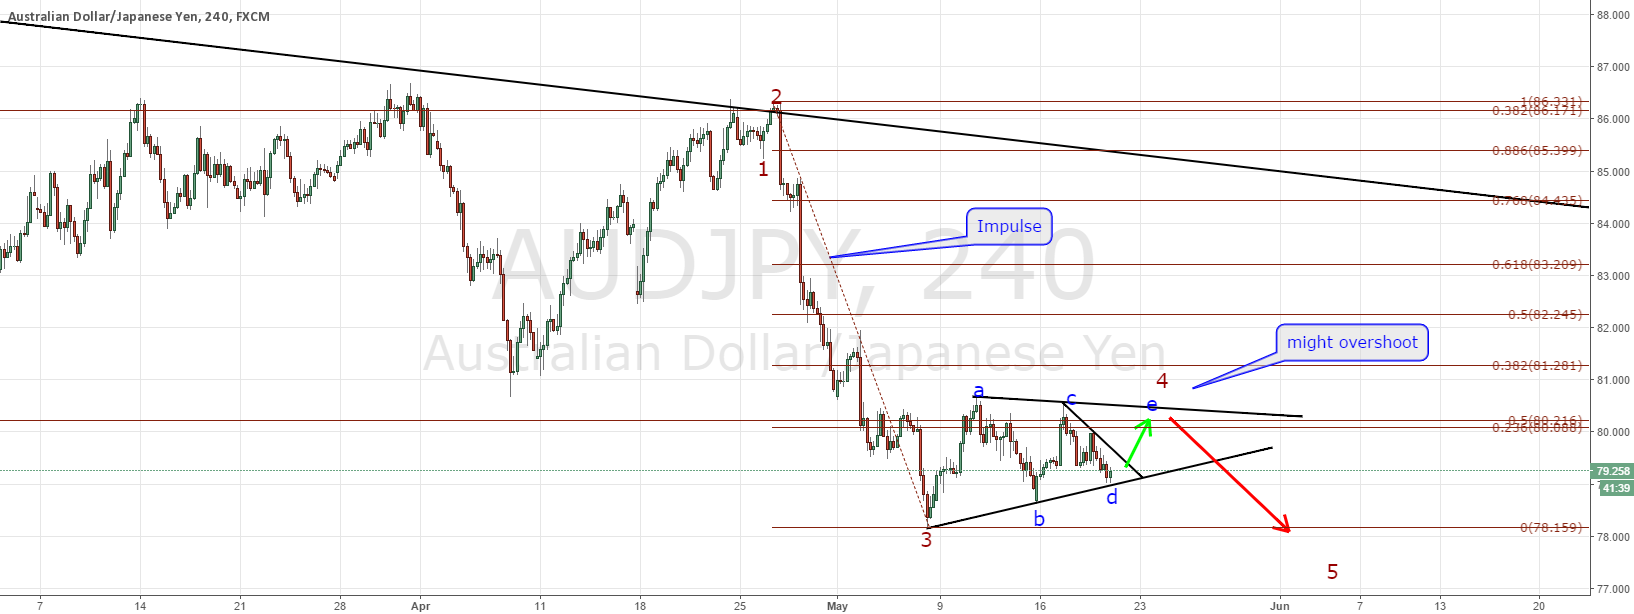 AUDJPY long then short